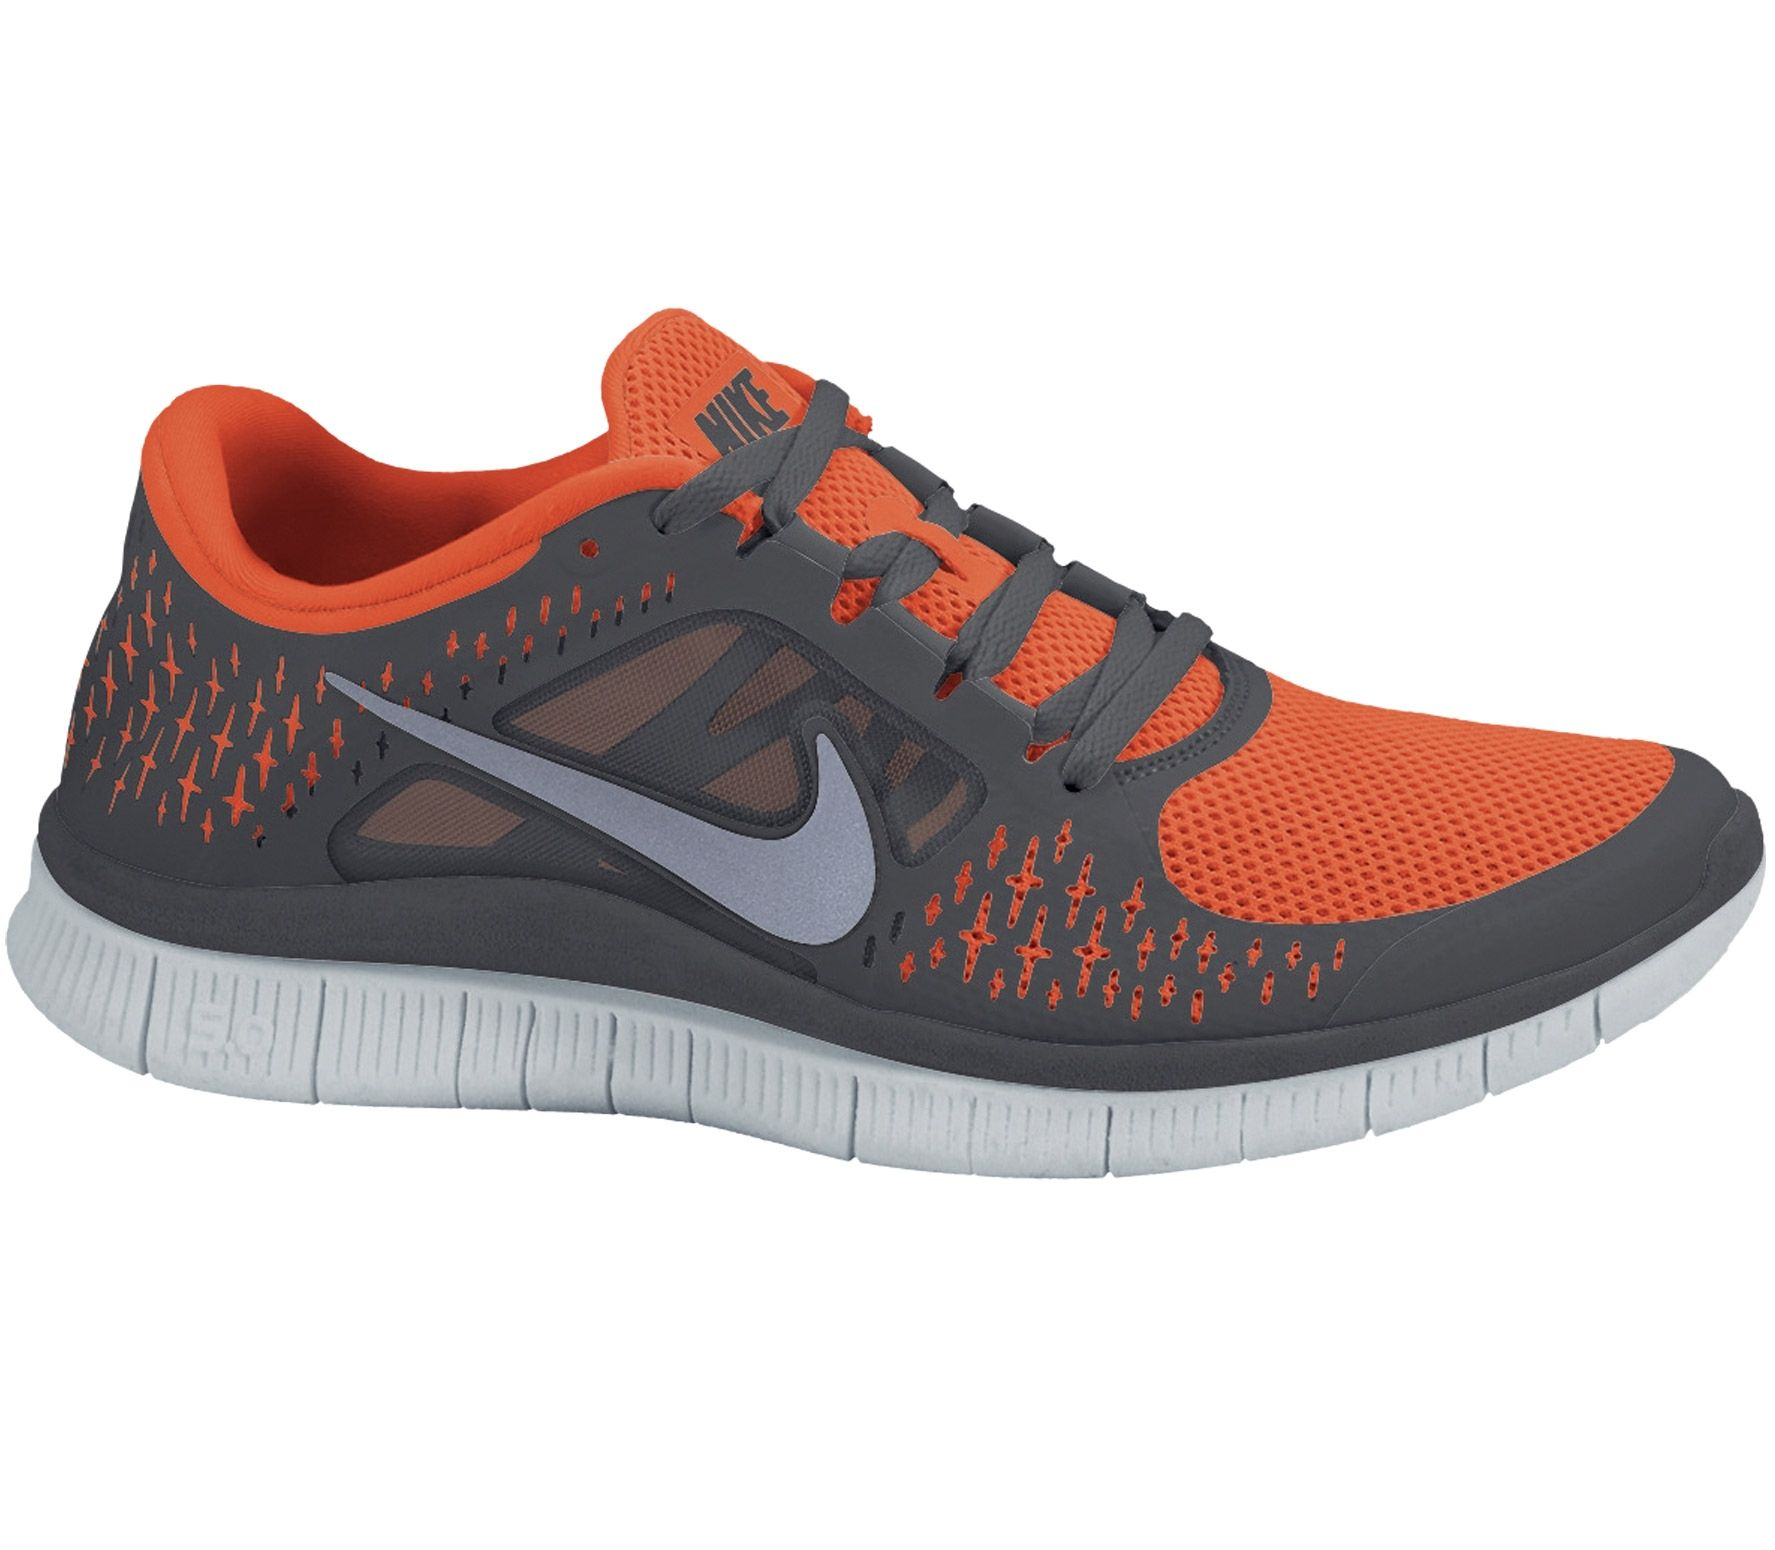 separation shoes 4f21c 4a176 ... sale nike running shoe men free run 3 running shoes barefoot ride for  men from nike ...